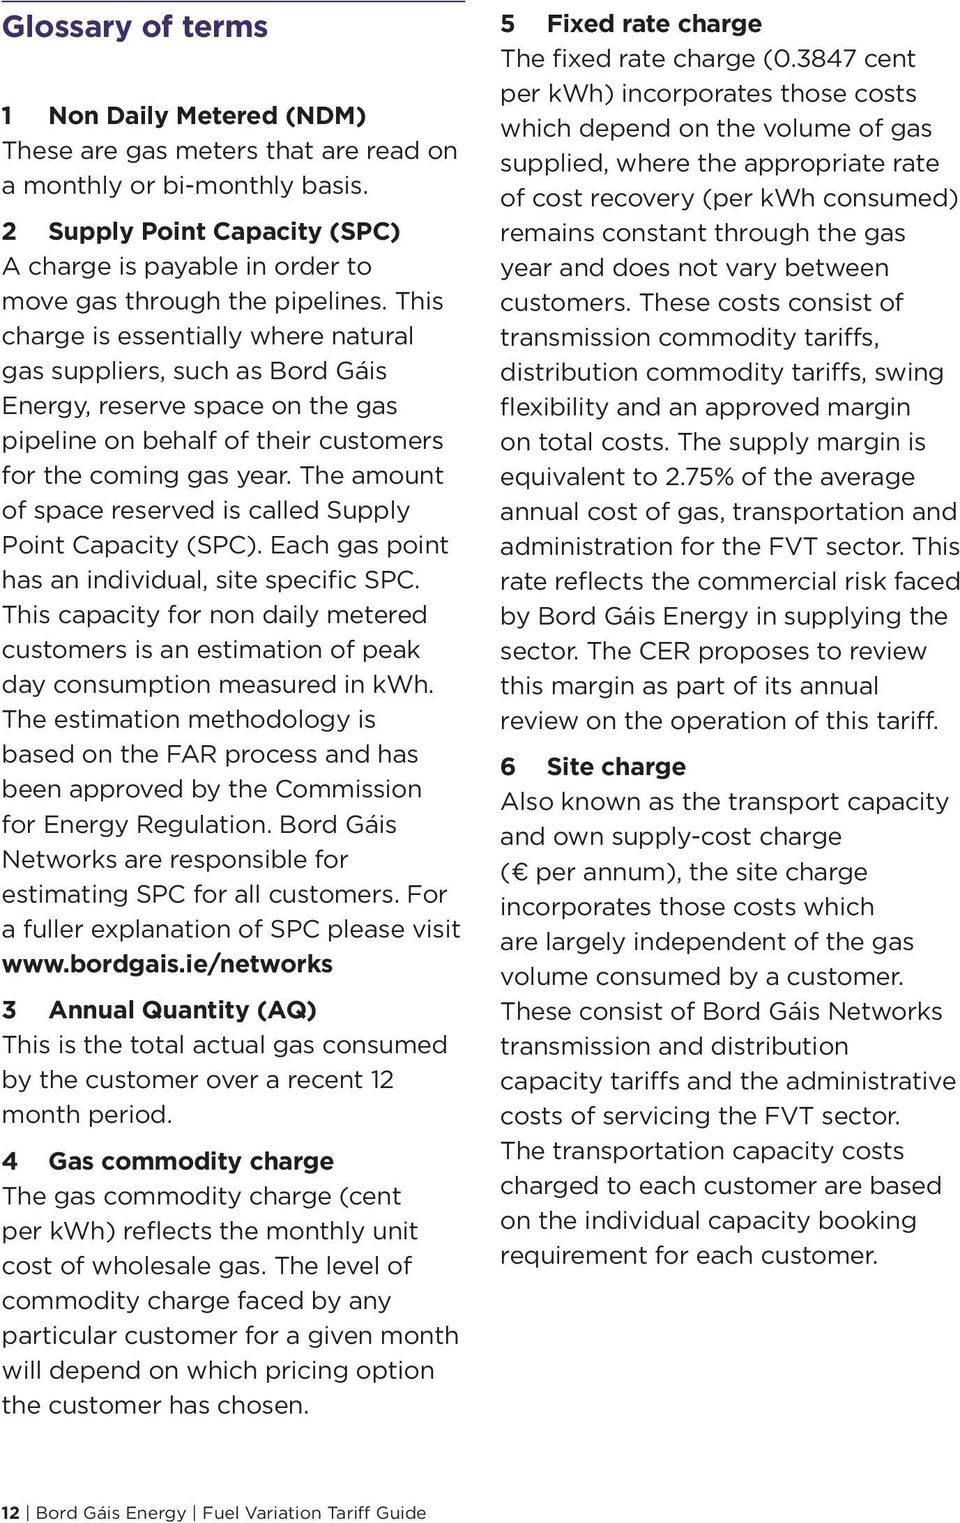 This charge is essentially where natural gas suppliers, such as Bord Gáis Energy, reserve space on the gas pipeline on behalf of their customers for the coming gas year.